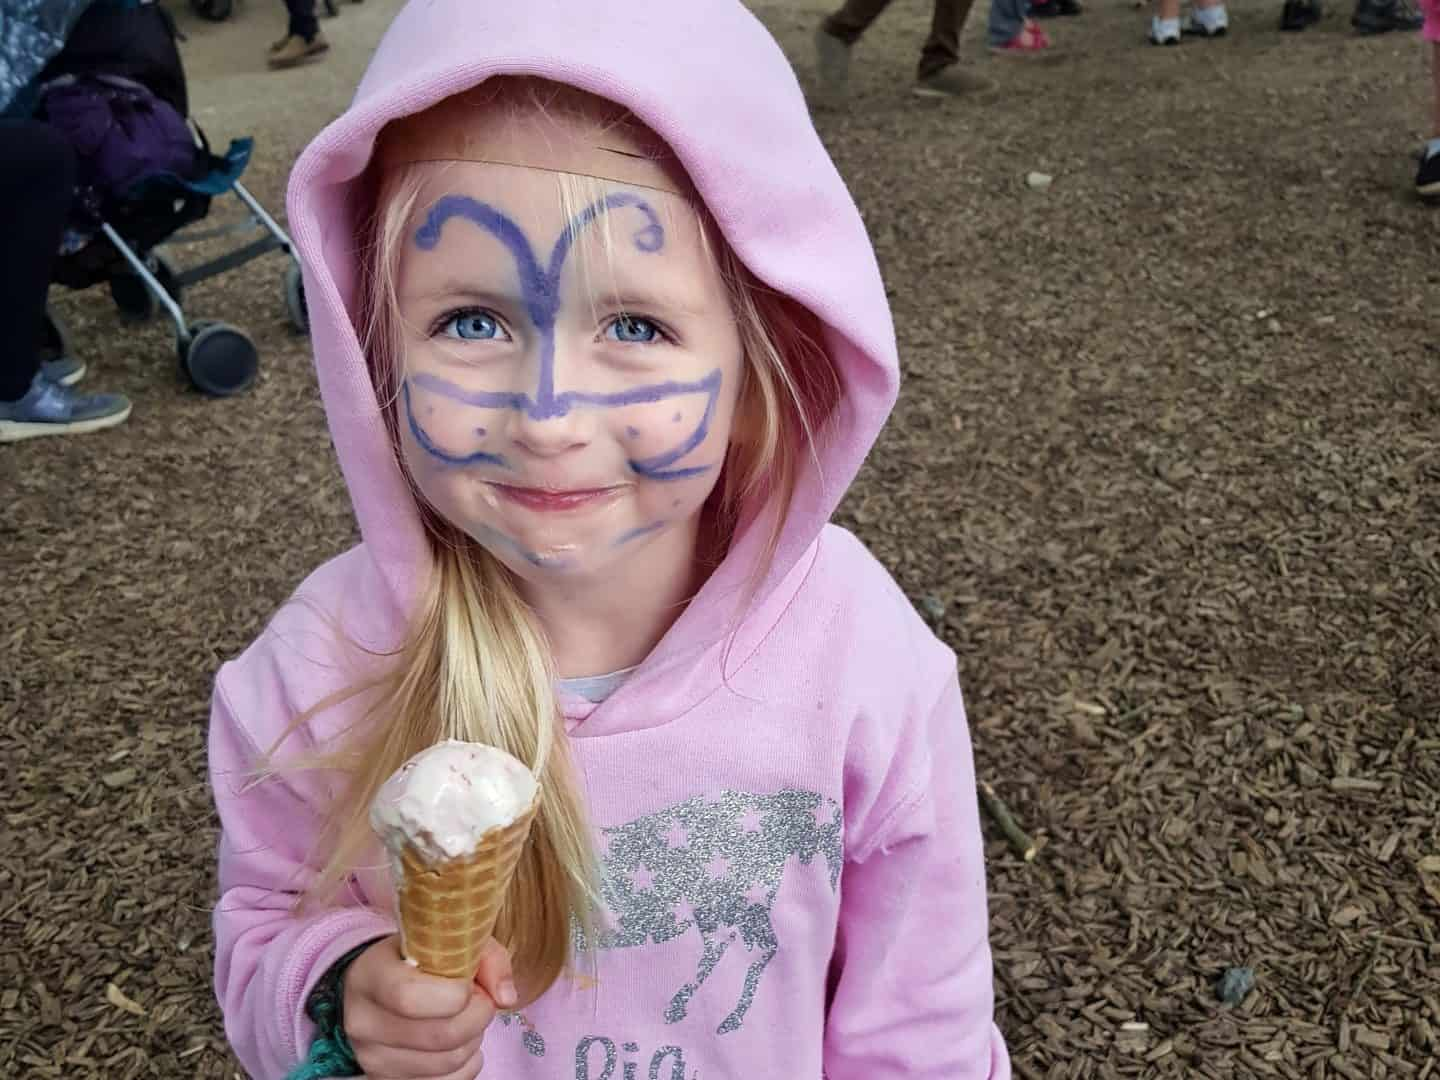 girl with blue butterfly face paint holding ice cream